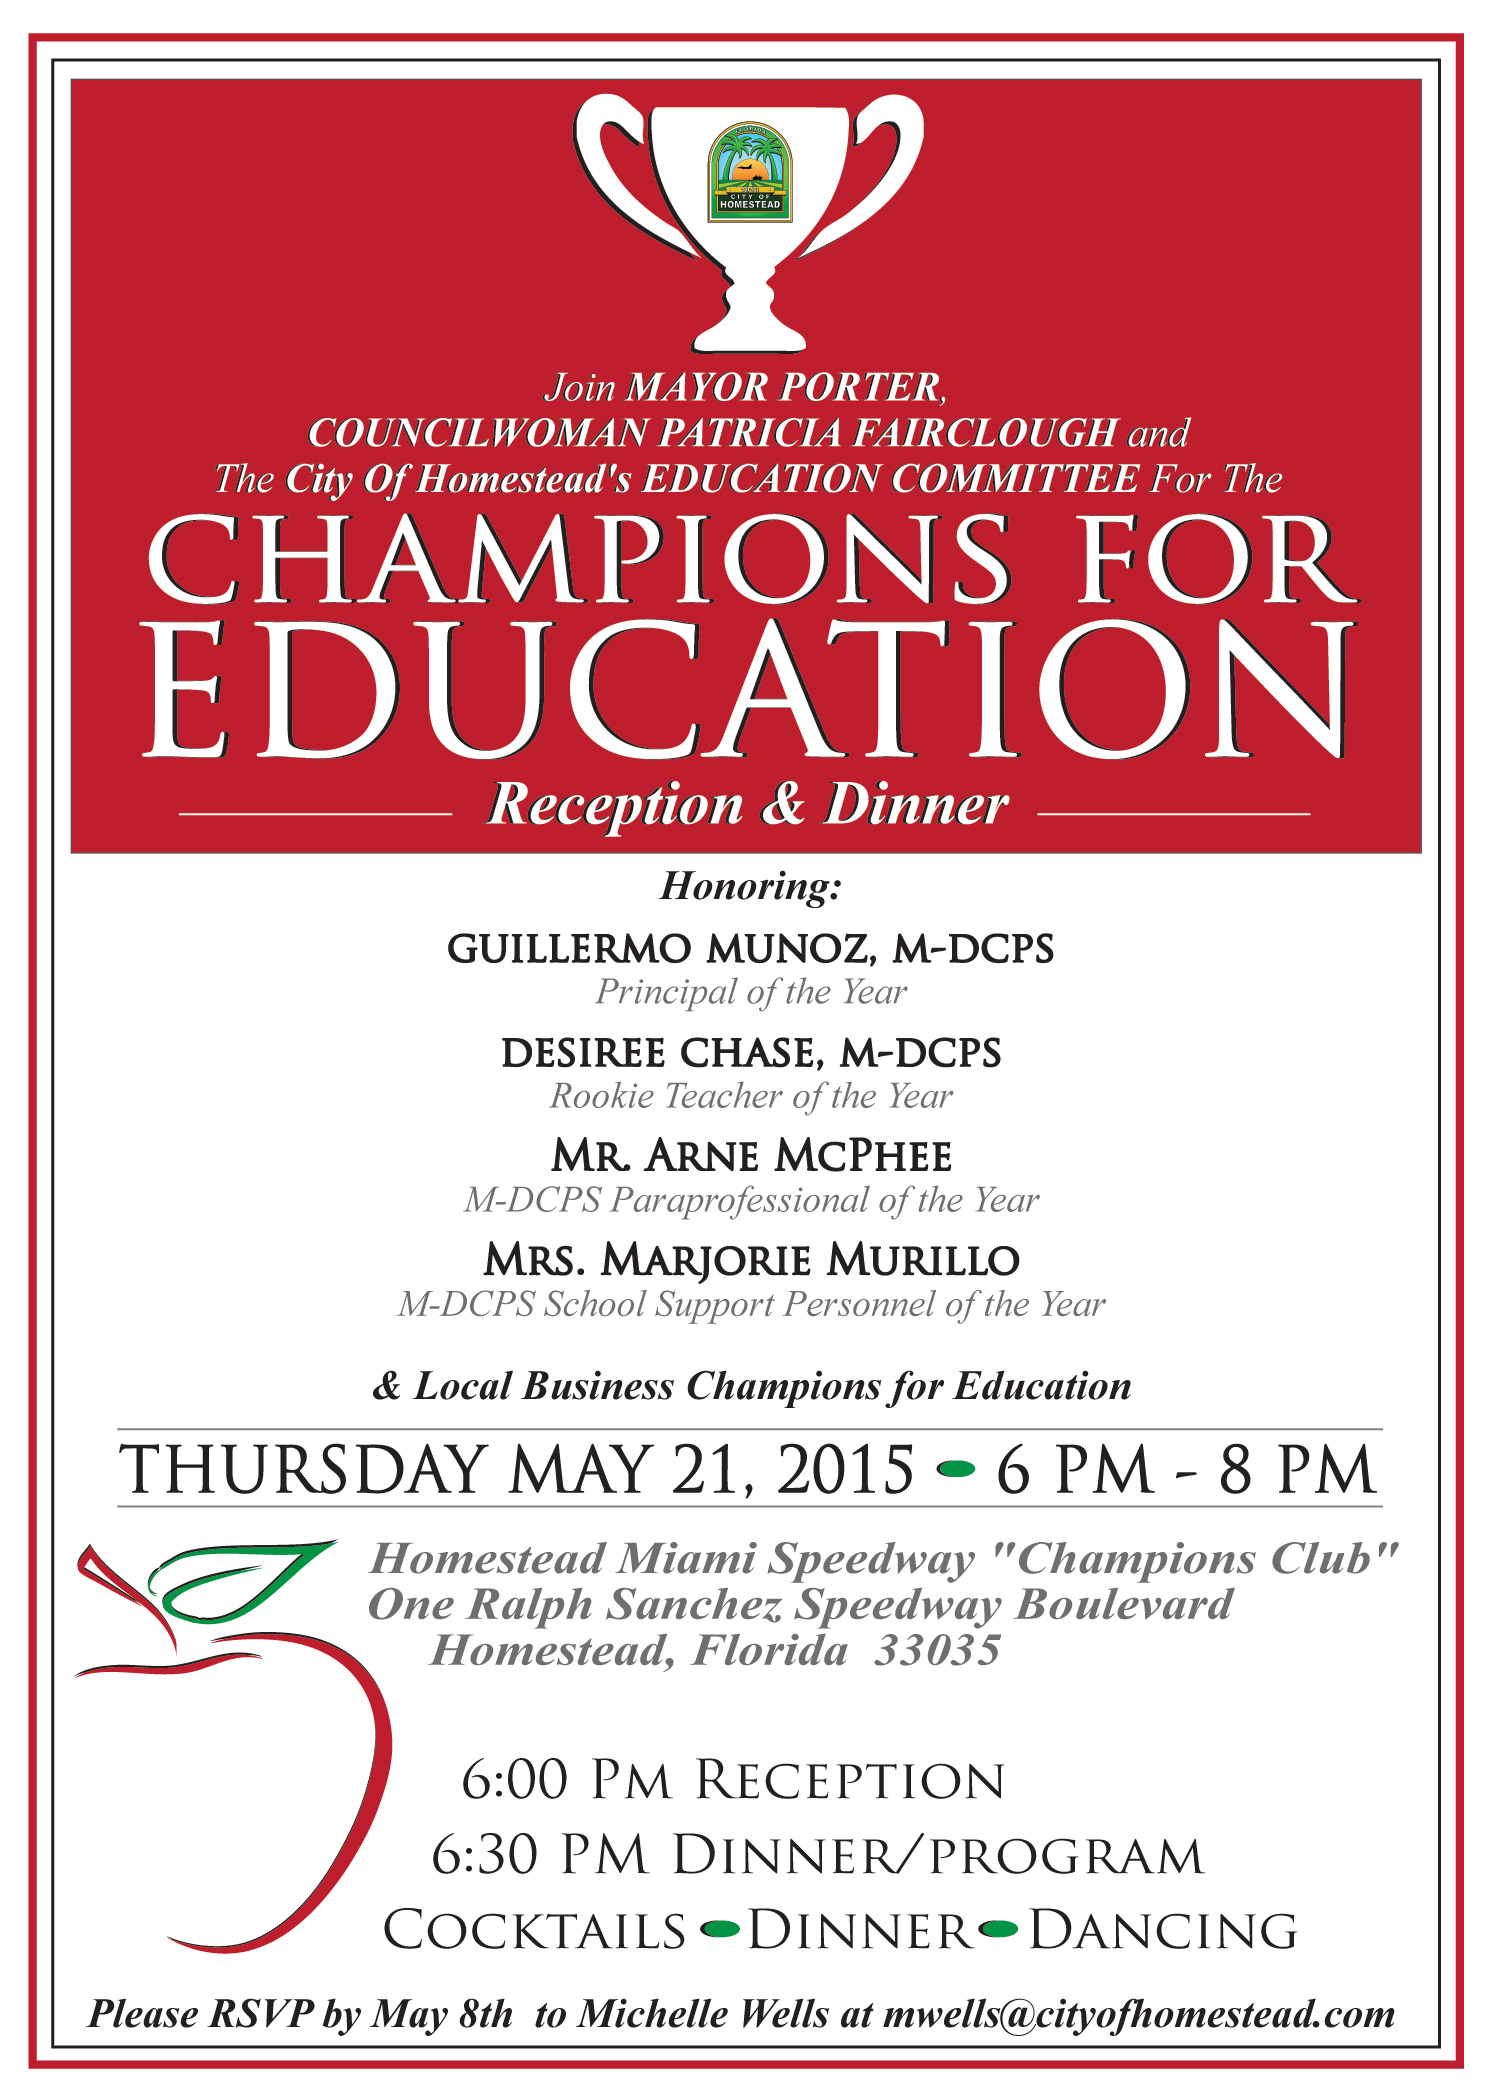 Champions for Education